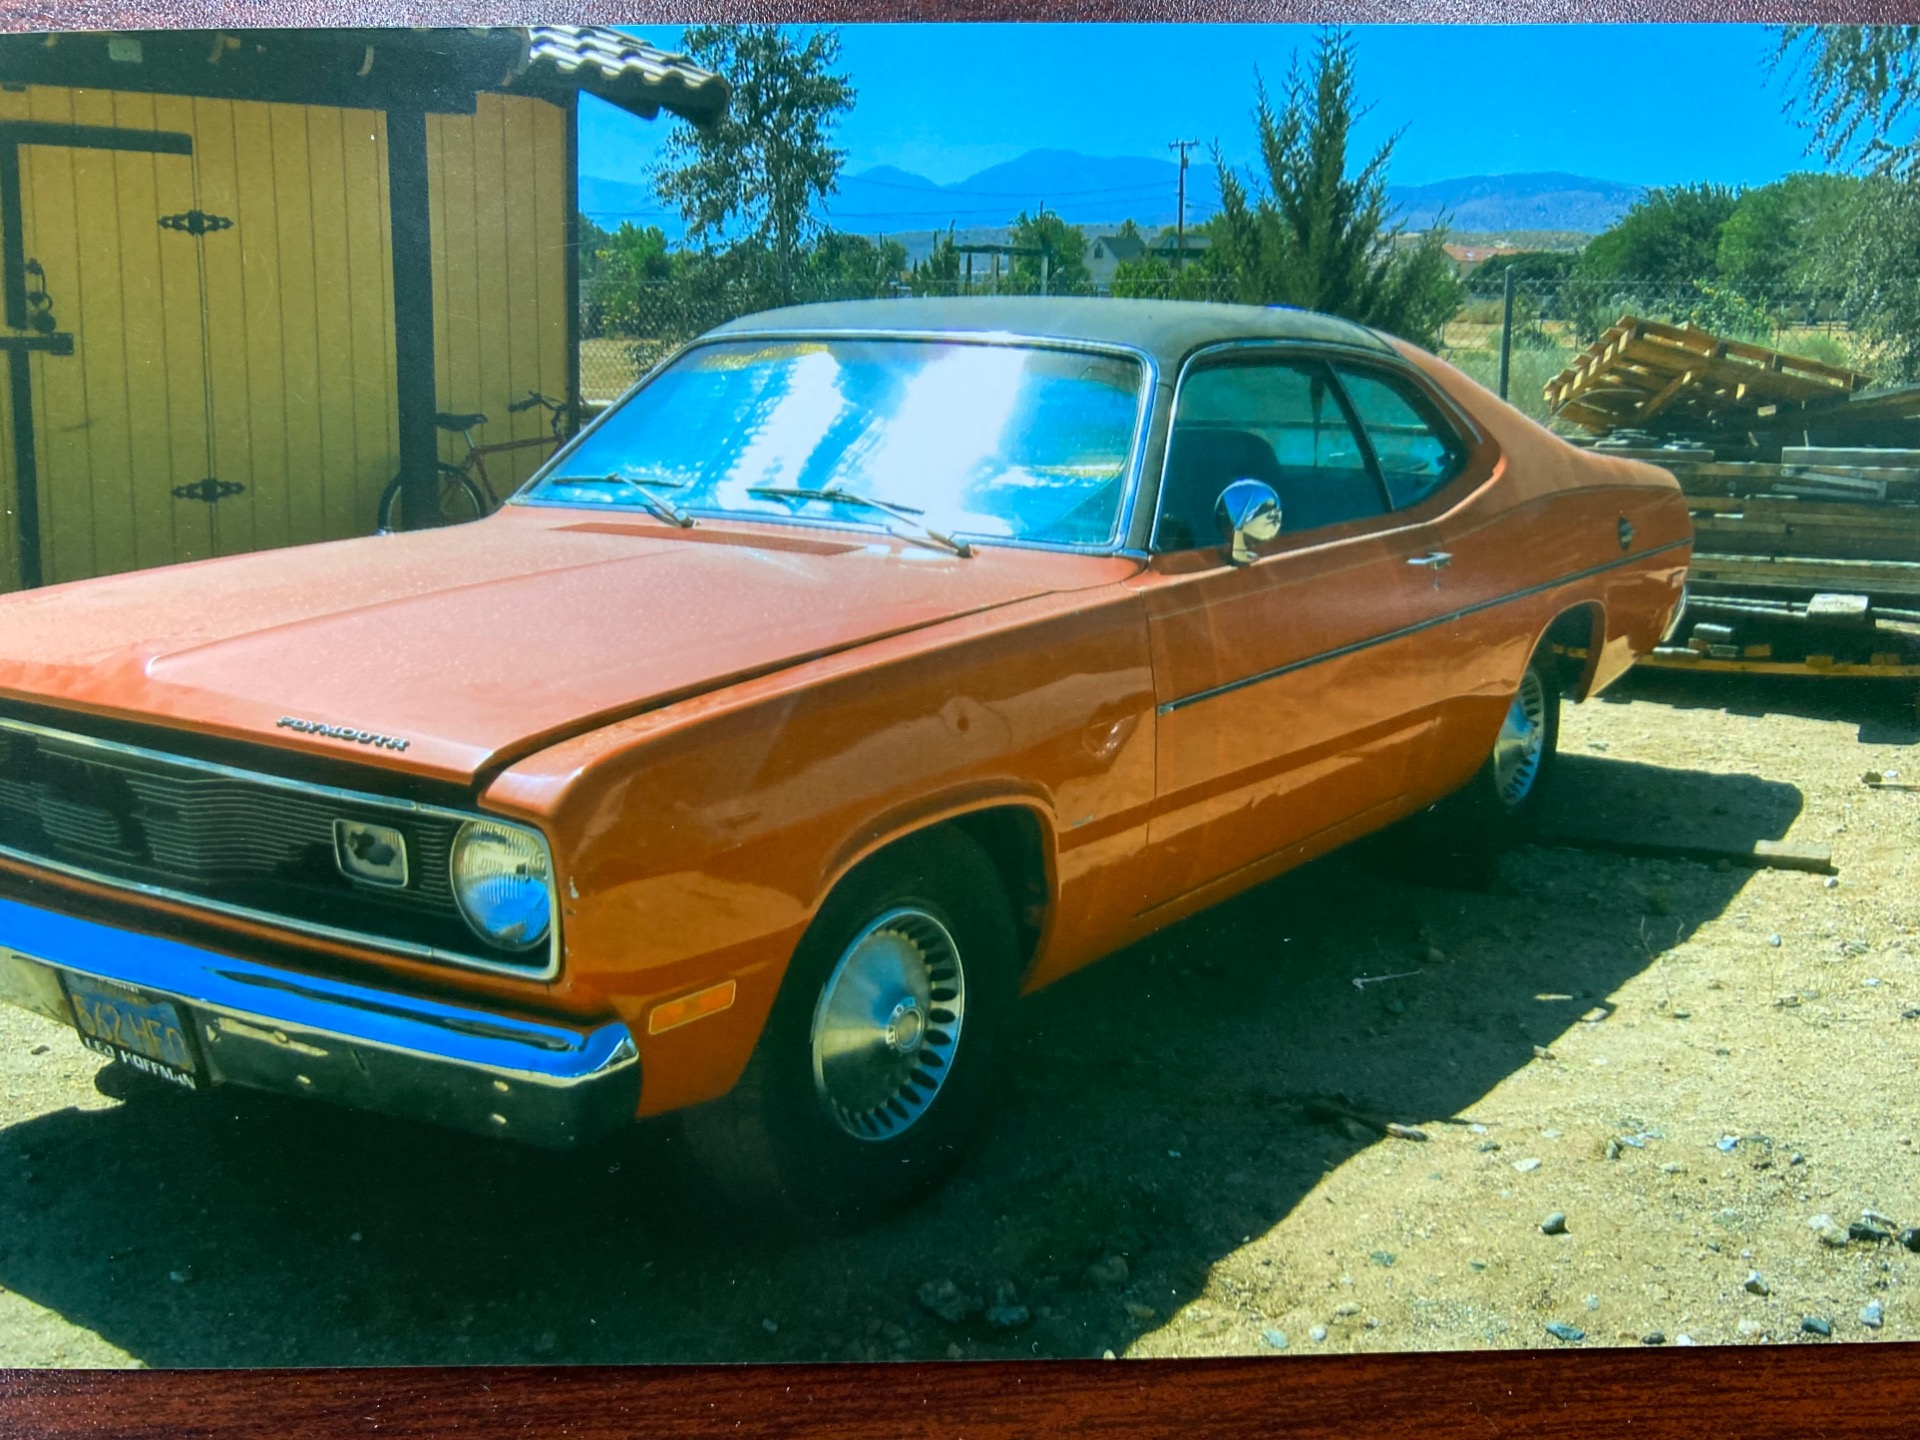 Used 1972 Plymouth Duster -LOW COST CLASSIC - GOLD DUSTER - FACTORY A/C - SEE VIDEO | Mundelein, IL